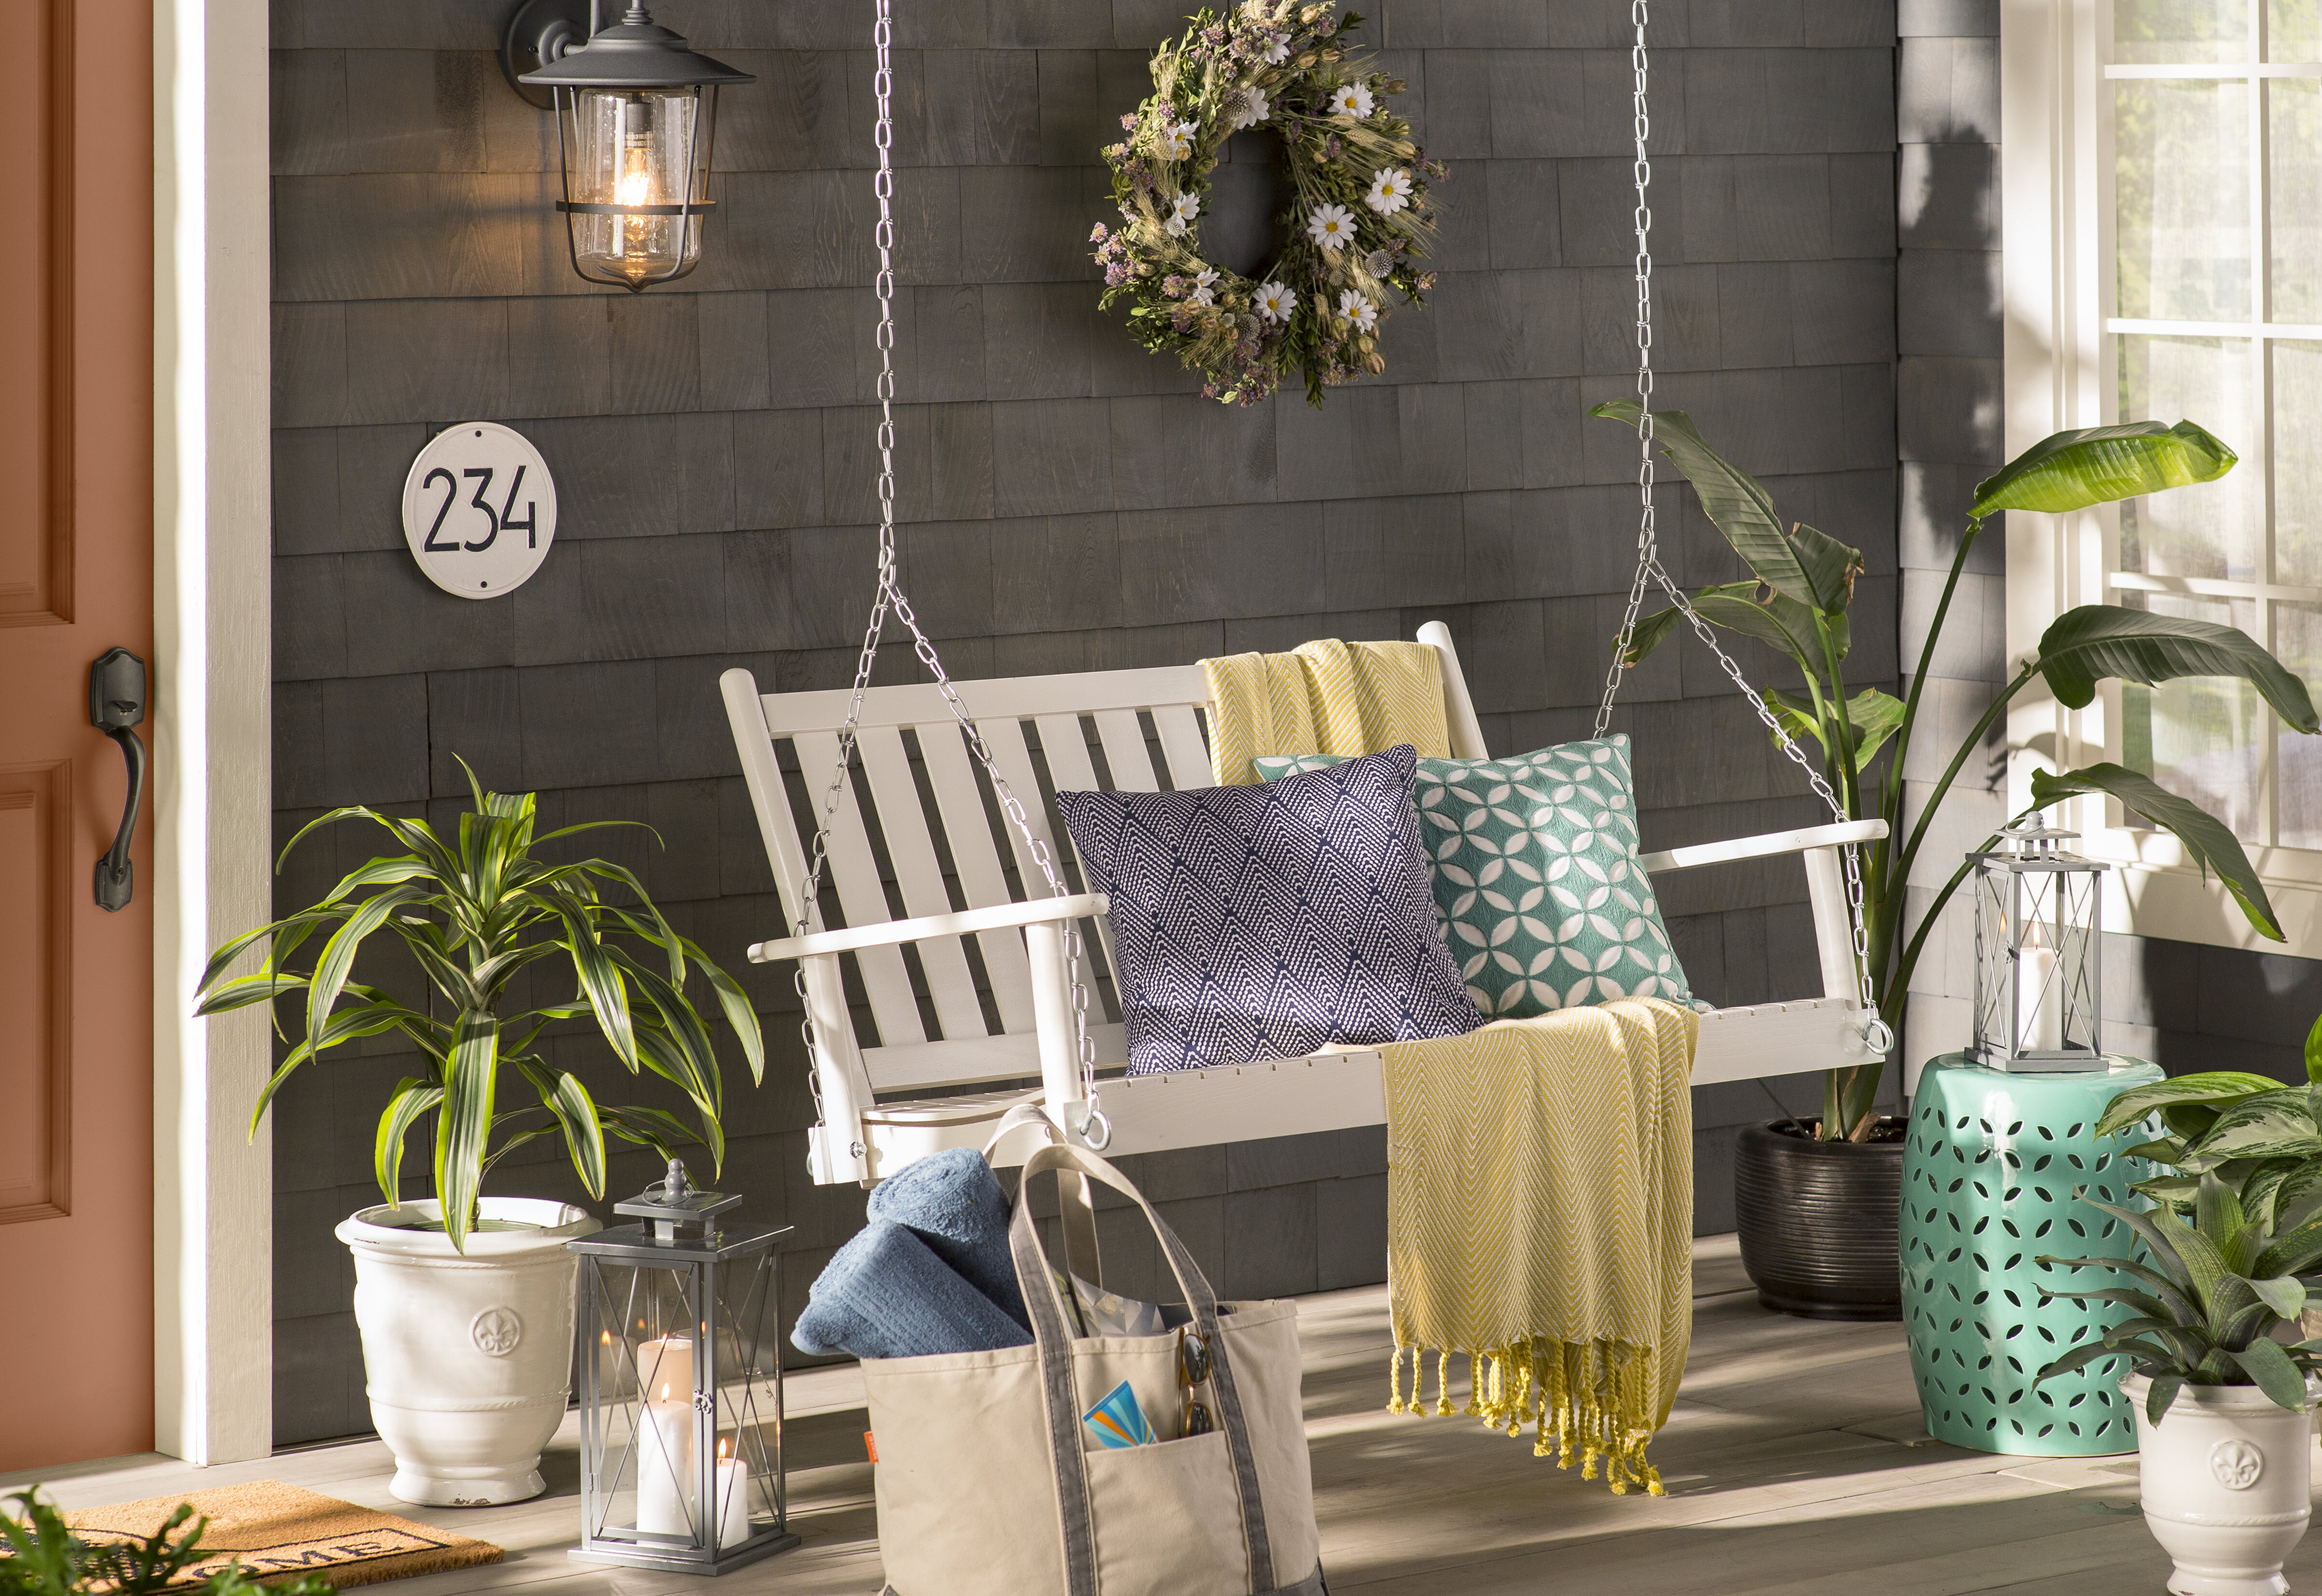 classic white porch swing with throw pillows and blankets